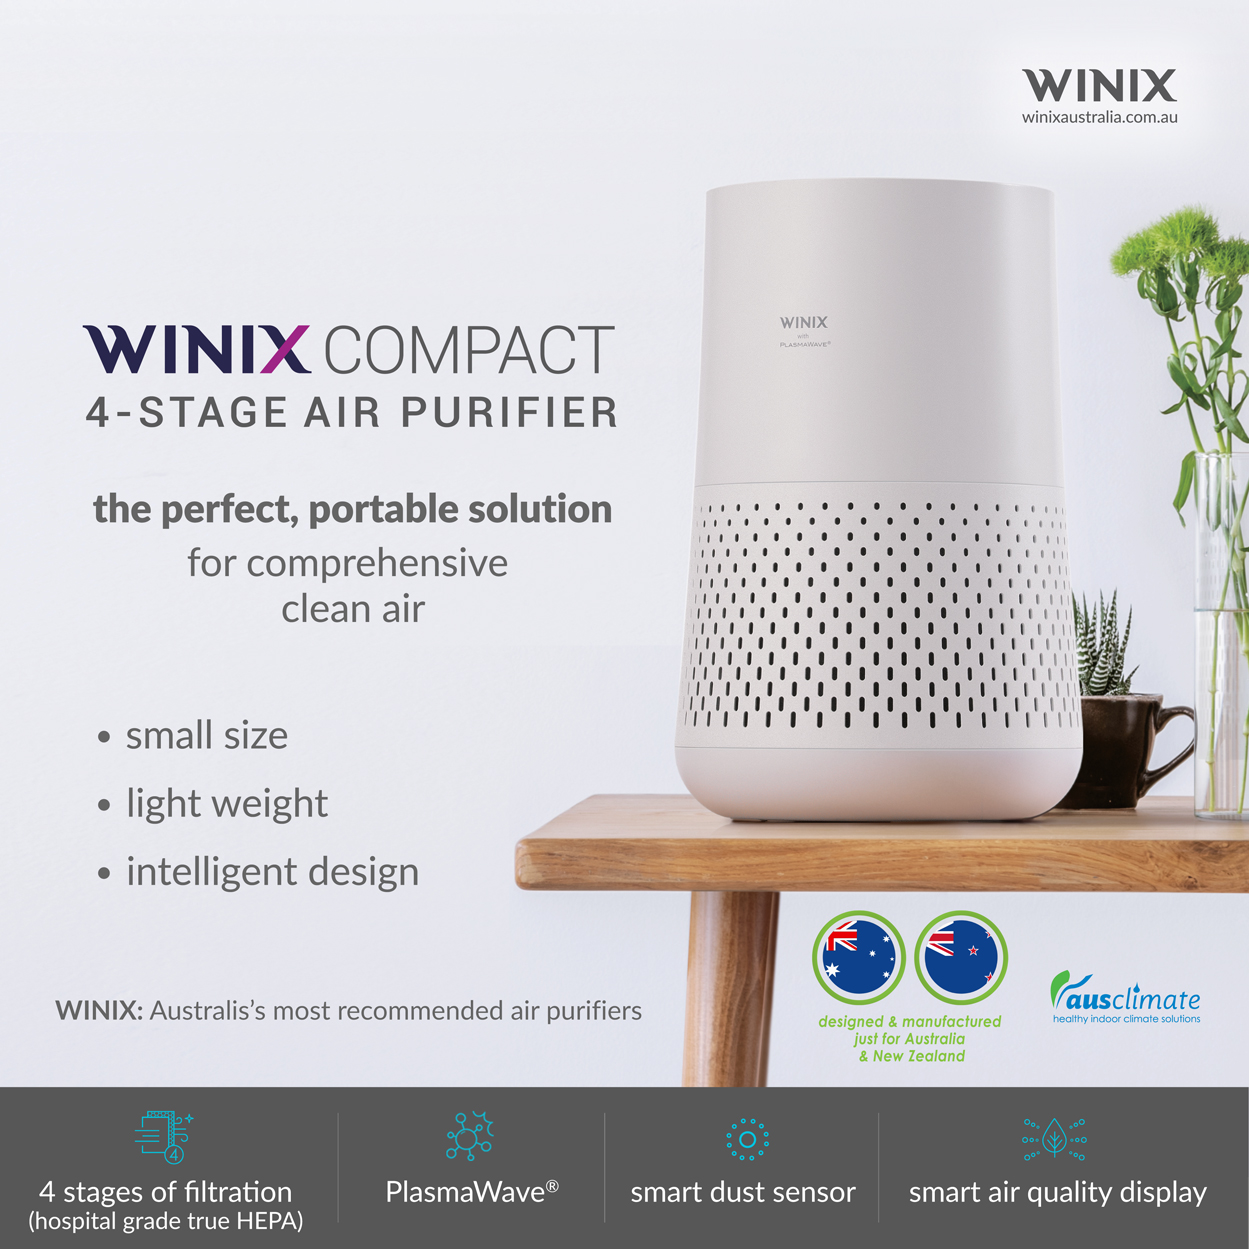 Winix-Australia-Compact-4-Stage-Air-Purifier-AUS-0850AAPU-[FEATURE]